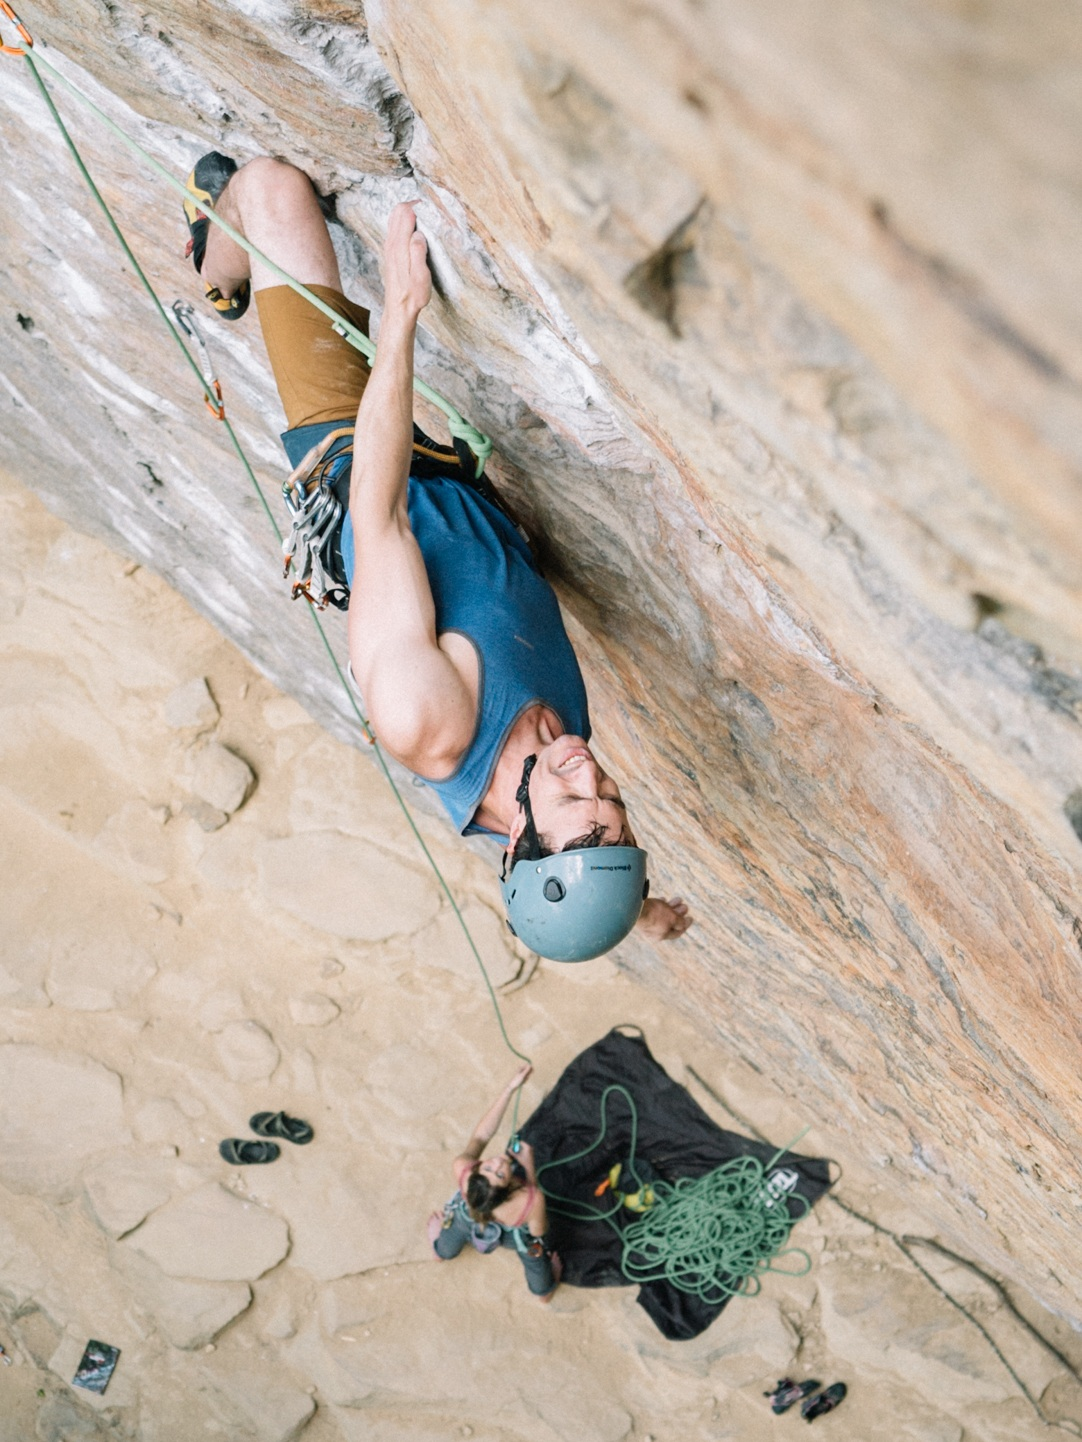 David Whitney sends Pulling Pockets (5.10d) onsight,